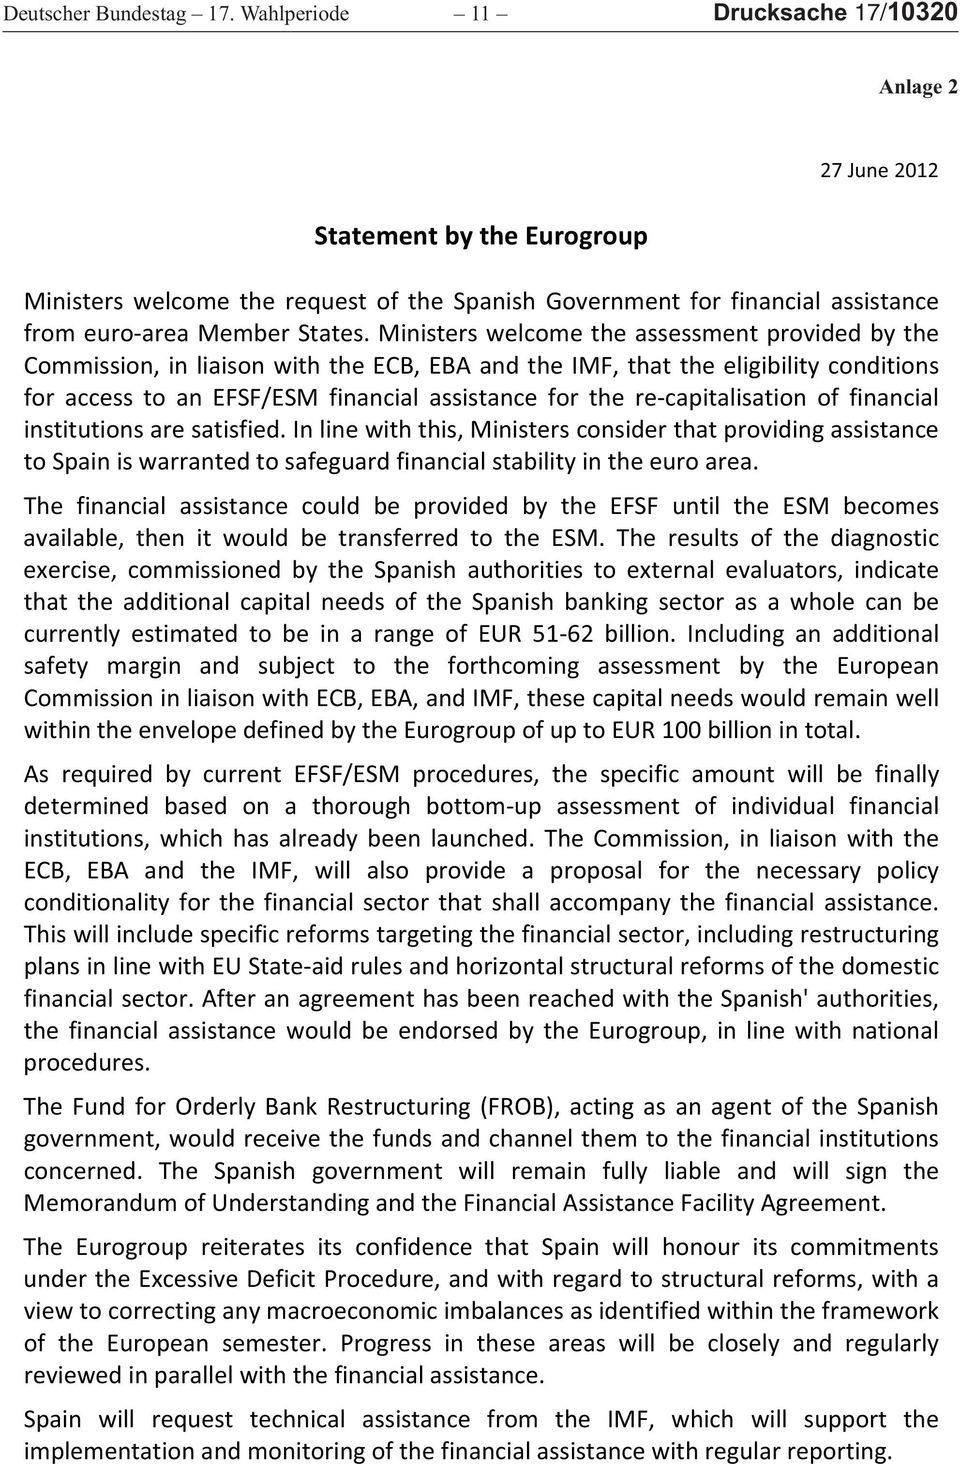 Ministers welcome the assessment provided by the Commission, in liaison with the ECB, EBA and the IMF, that the eligibility conditions for access to an EFSF/ESM financial assistance for the re